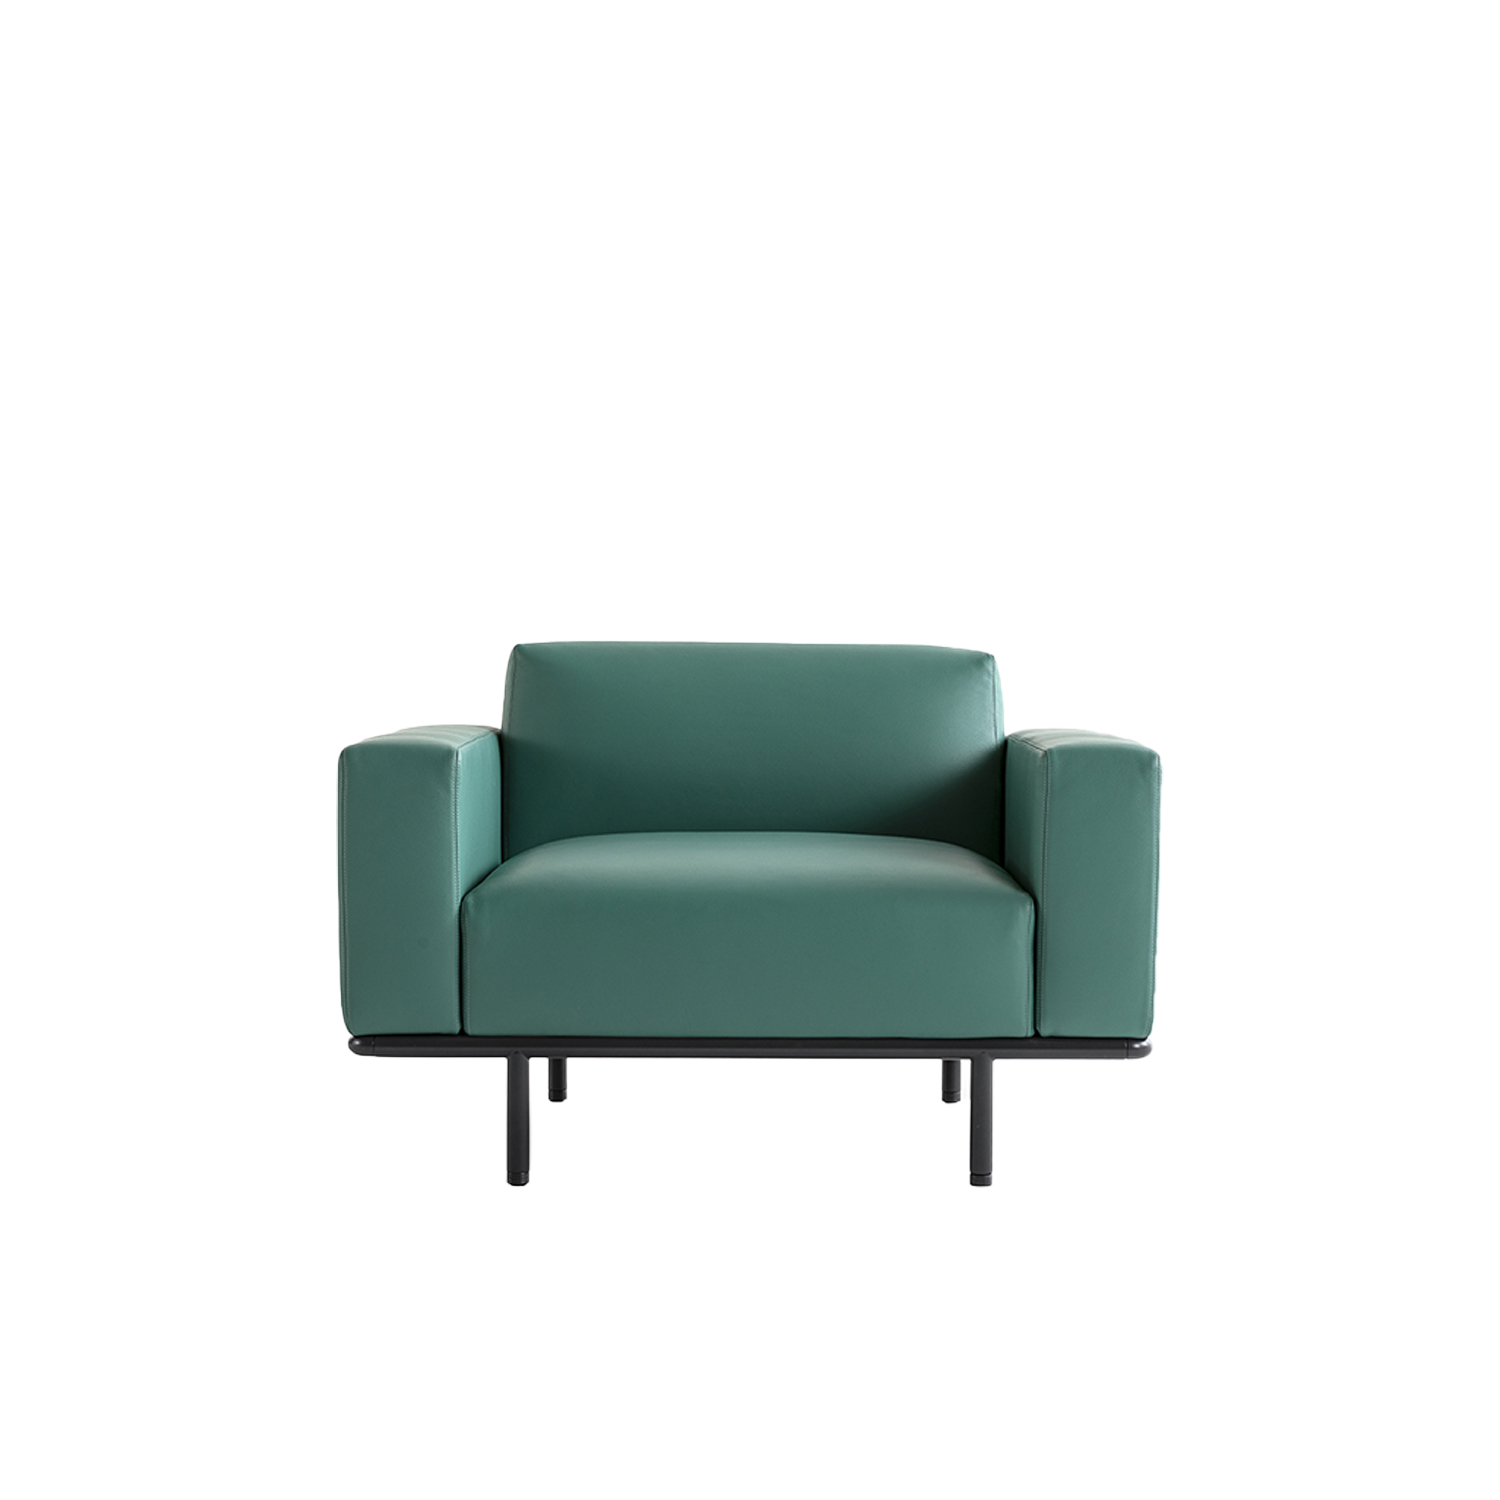 Cap Ferrat Lounge Armchair - Cap Ferrat sofa by Carlo Colombo is the emblem of a new collection marked by a rigorous and virtually atemporal design, capable of maintaining an airy appearance, even in large-scale dimensions.